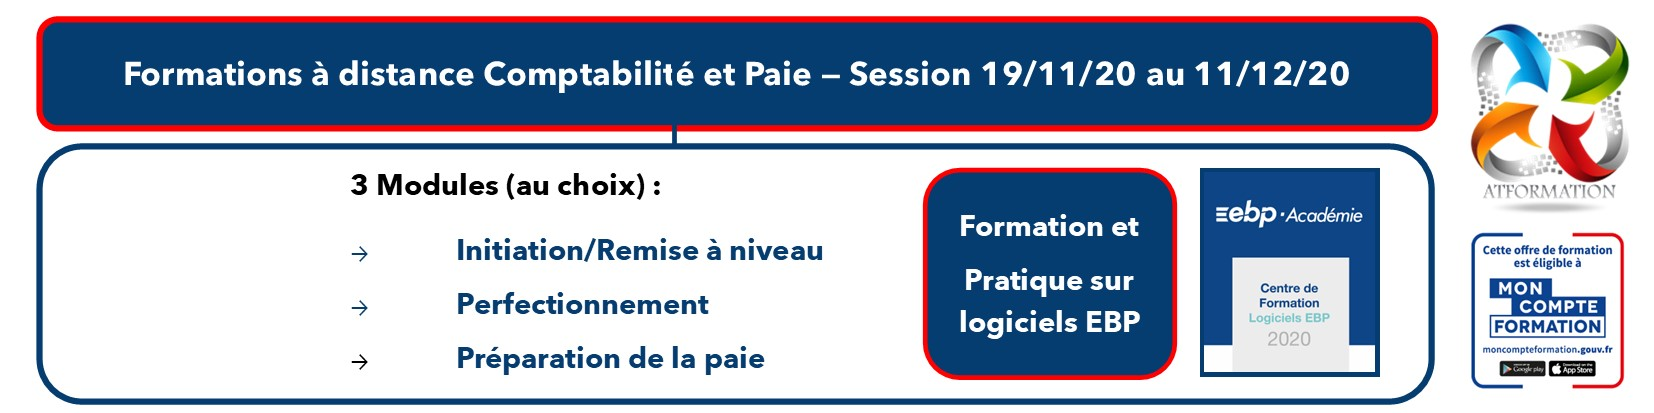 AT FORMATION - COMPTABILITE PAIE MON COMPTE FORMATION CPF SESSION NOVEMBRE 2020 A DISTANCE